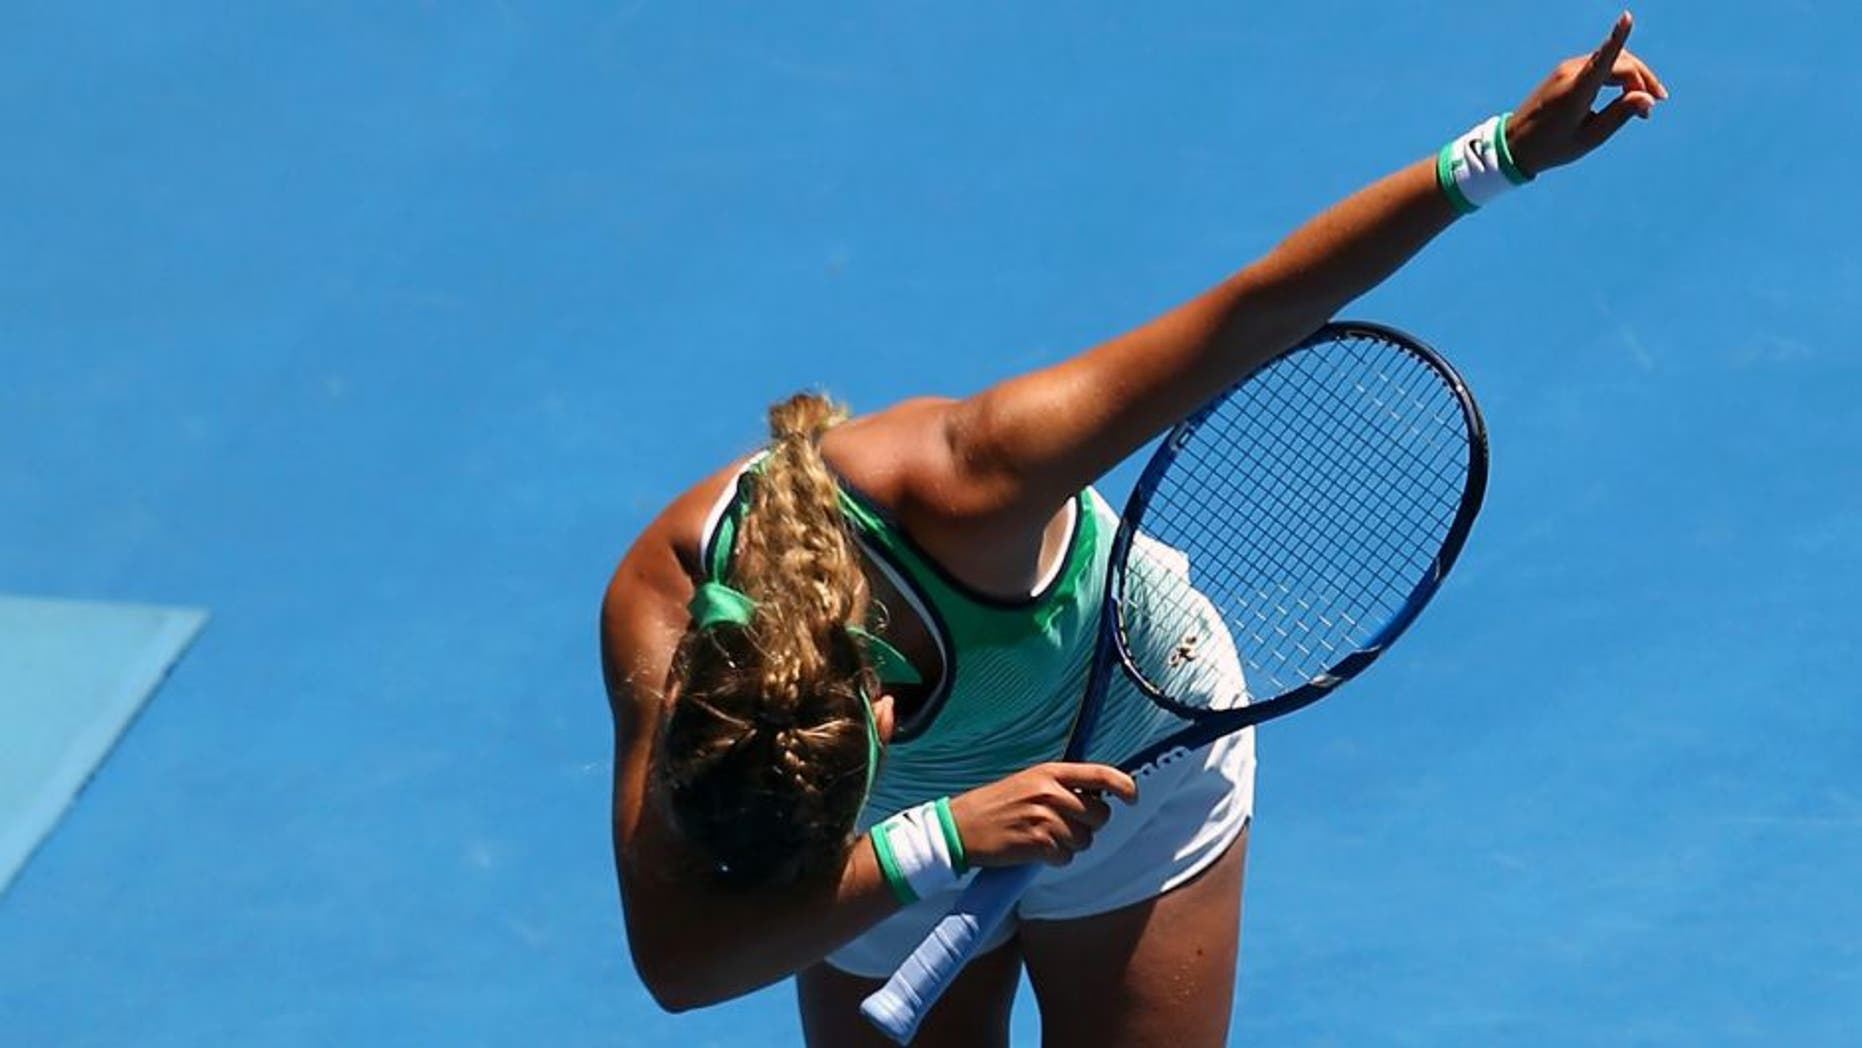 MELBOURNE, AUSTRALIA - JANUARY 25: Victoria Azarenka of Belarus celebrates winning her fourth round match against Barbora Strycova of the Czech Republic during day eight of the 2016 Australian Open at Melbourne Park on January 25, 2016 in Melbourne, Australia. (Photo by Mark Kolbe/Getty Images)